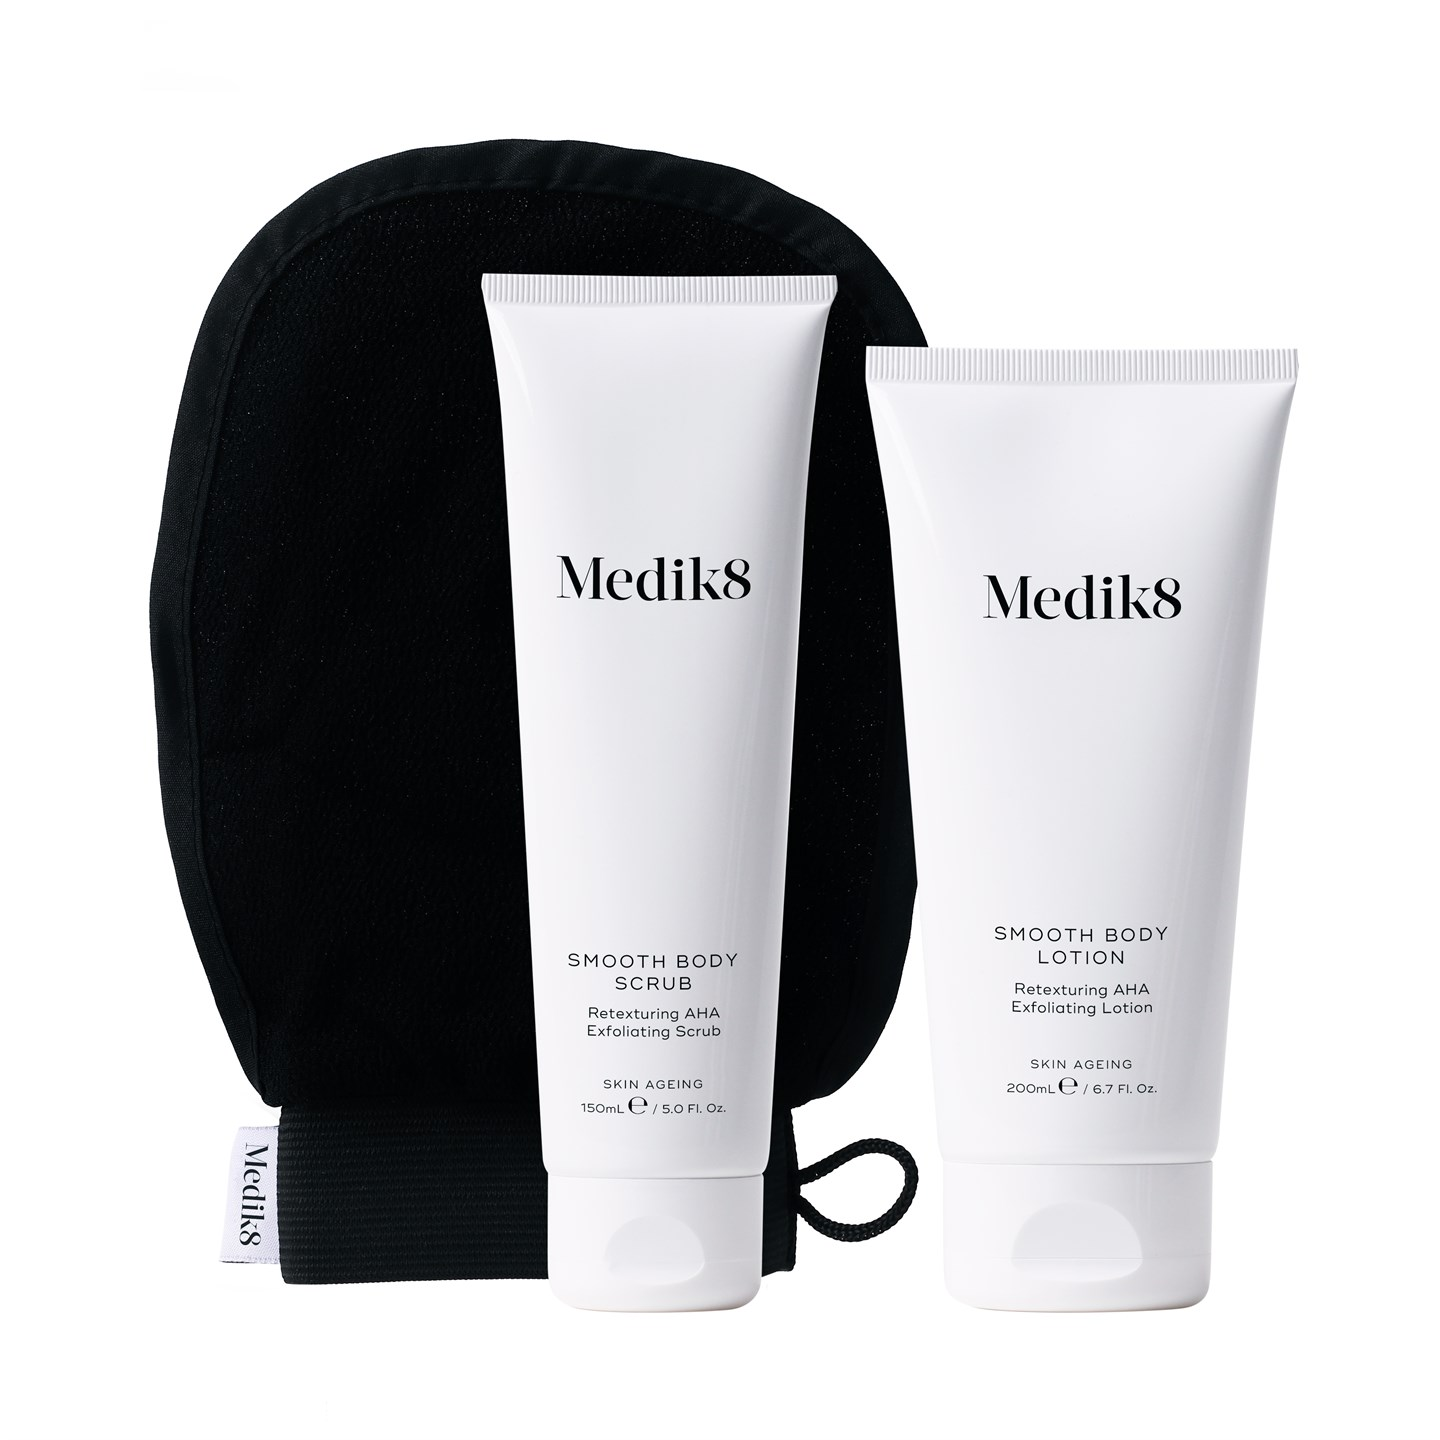 Medik8 Smooth Body Exfoliating Kit